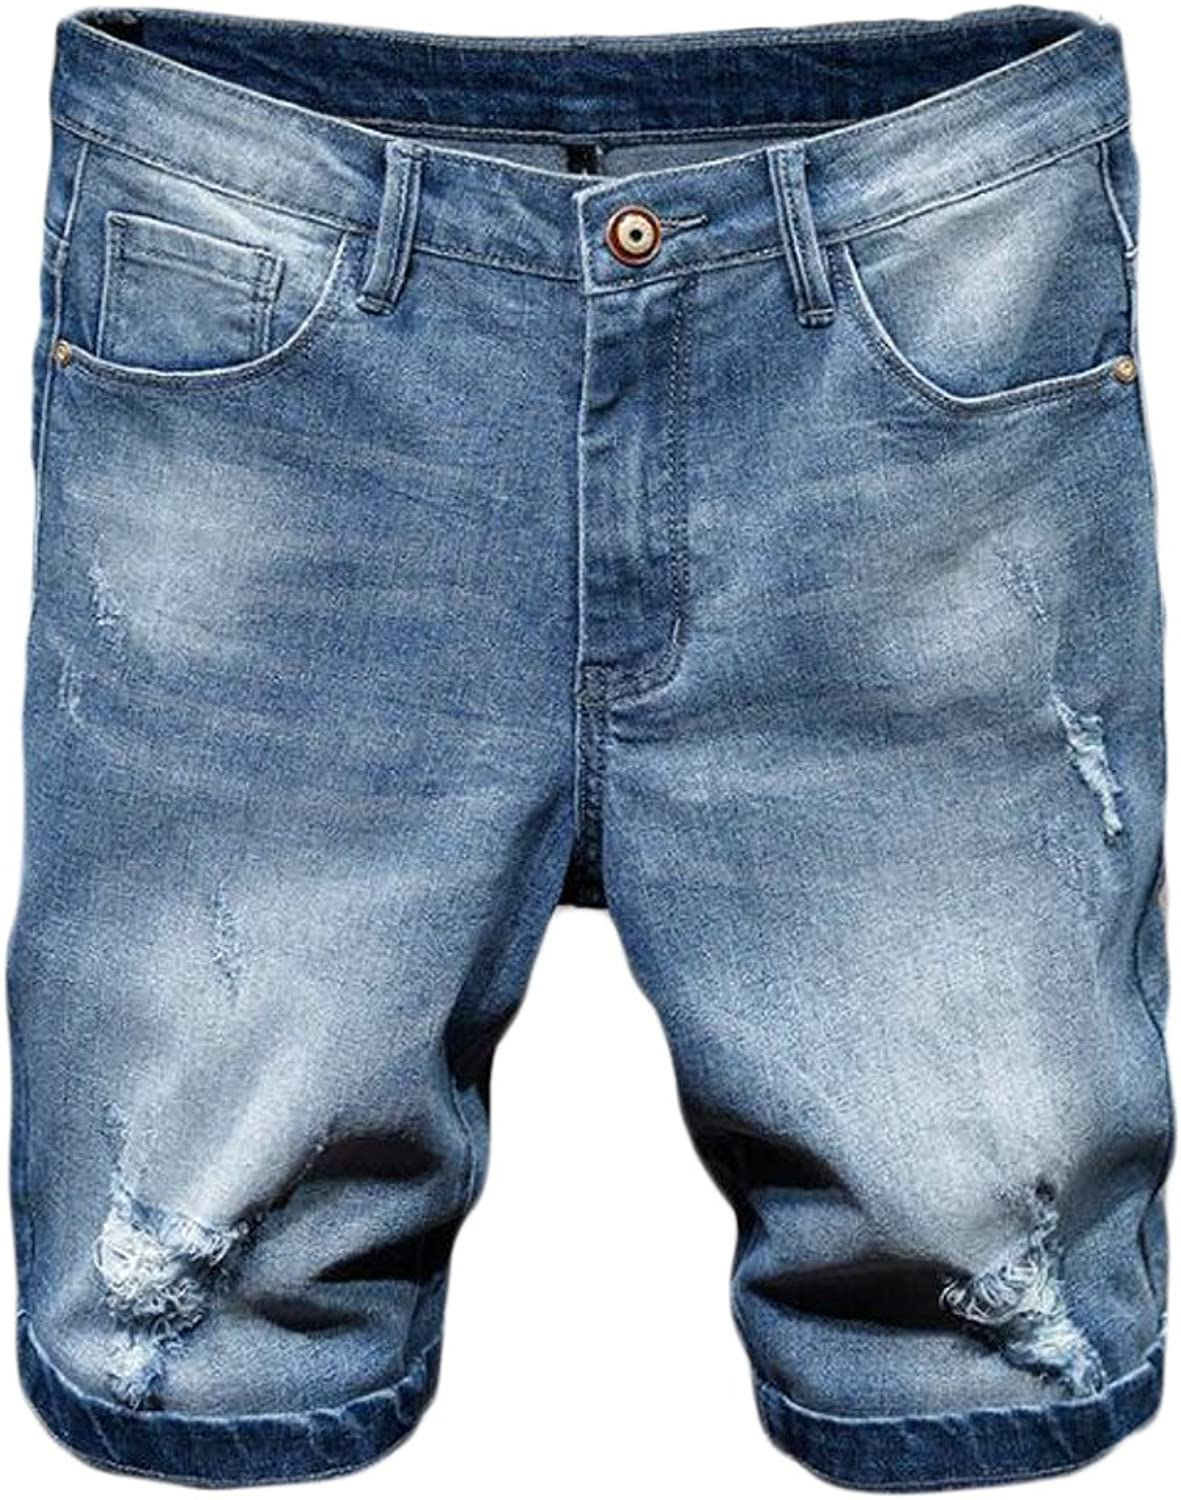 BYWX-Men Jeans Denim Light Ripped Distressed Washed Shorts